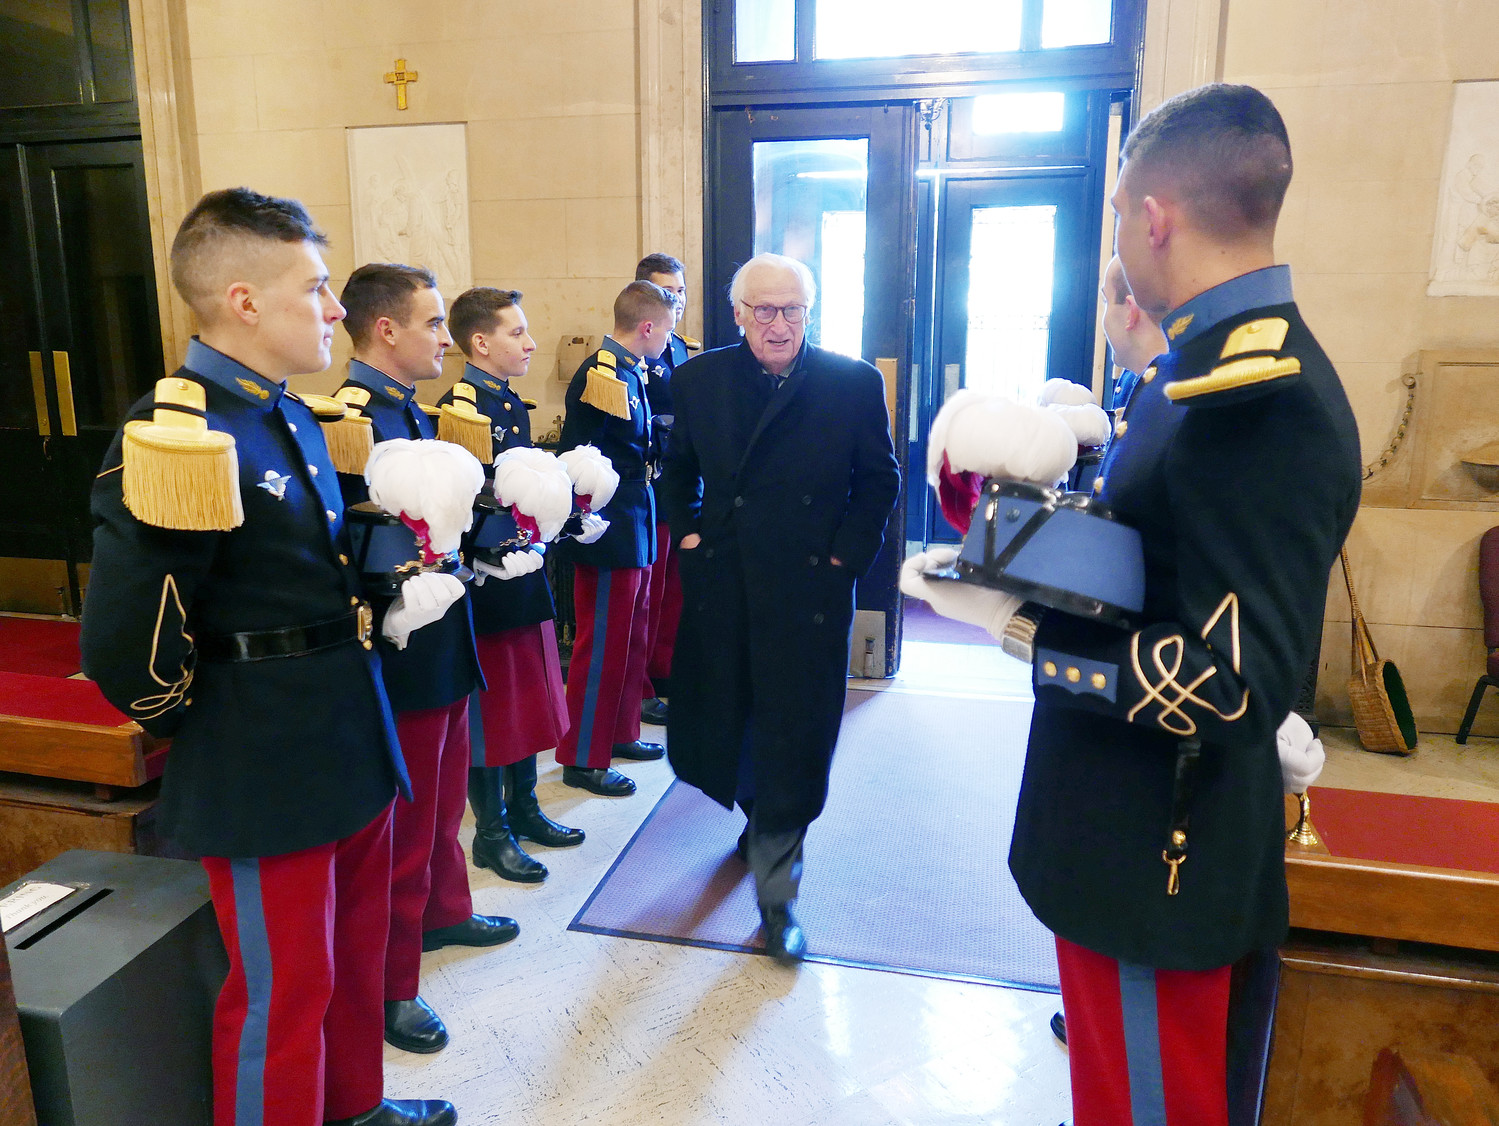 A dozen cadets from the Military Academy of St. Cyr in Versailles, France participated in the Nov. 11 ceremony. The cadets are serving as interns this semester at West Point.